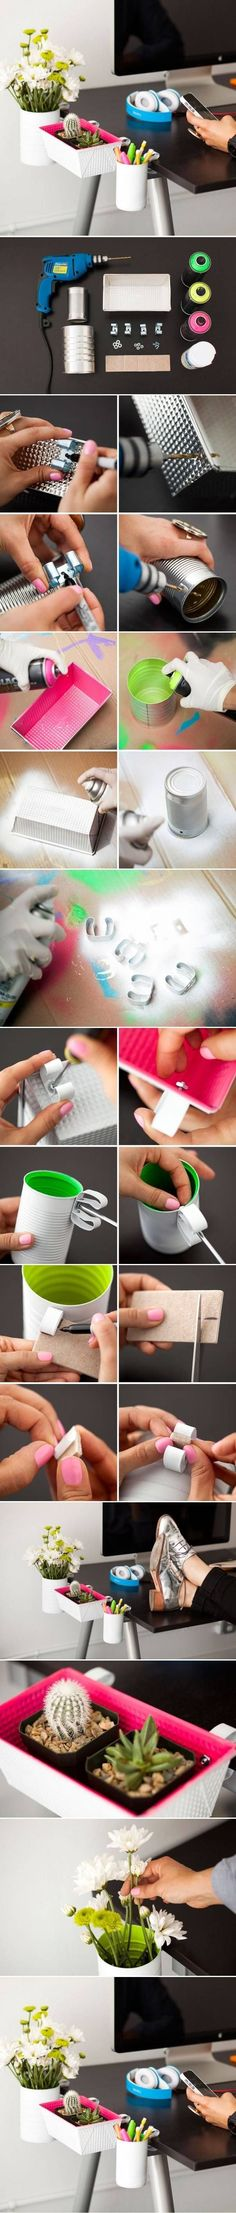 Diy Crafts Ideas : DIY